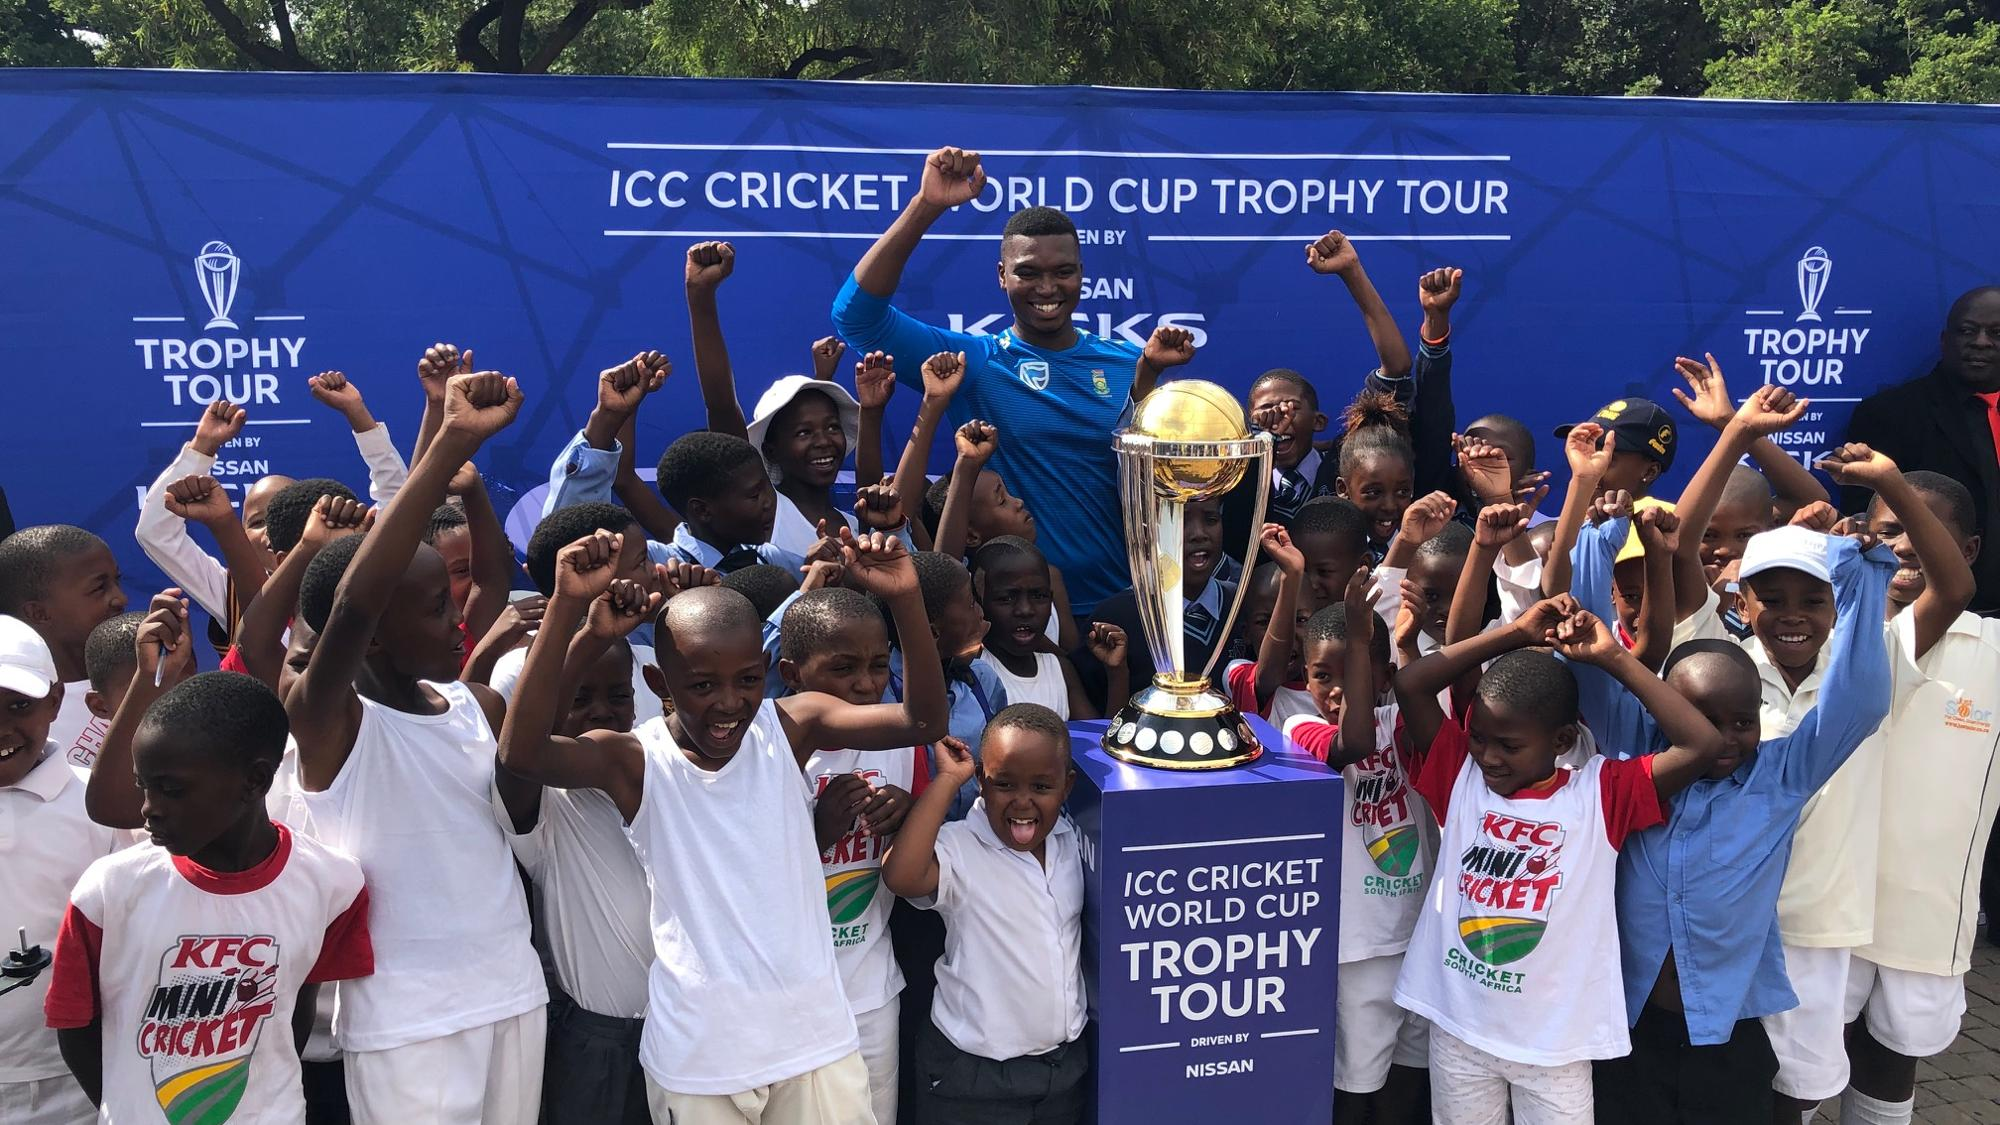 South Africa pacer Lungi Ngidi met local children during the ICC Cricket World Cup Trophy Tour, driven by Nissan, at Hector Pieterson Memorial